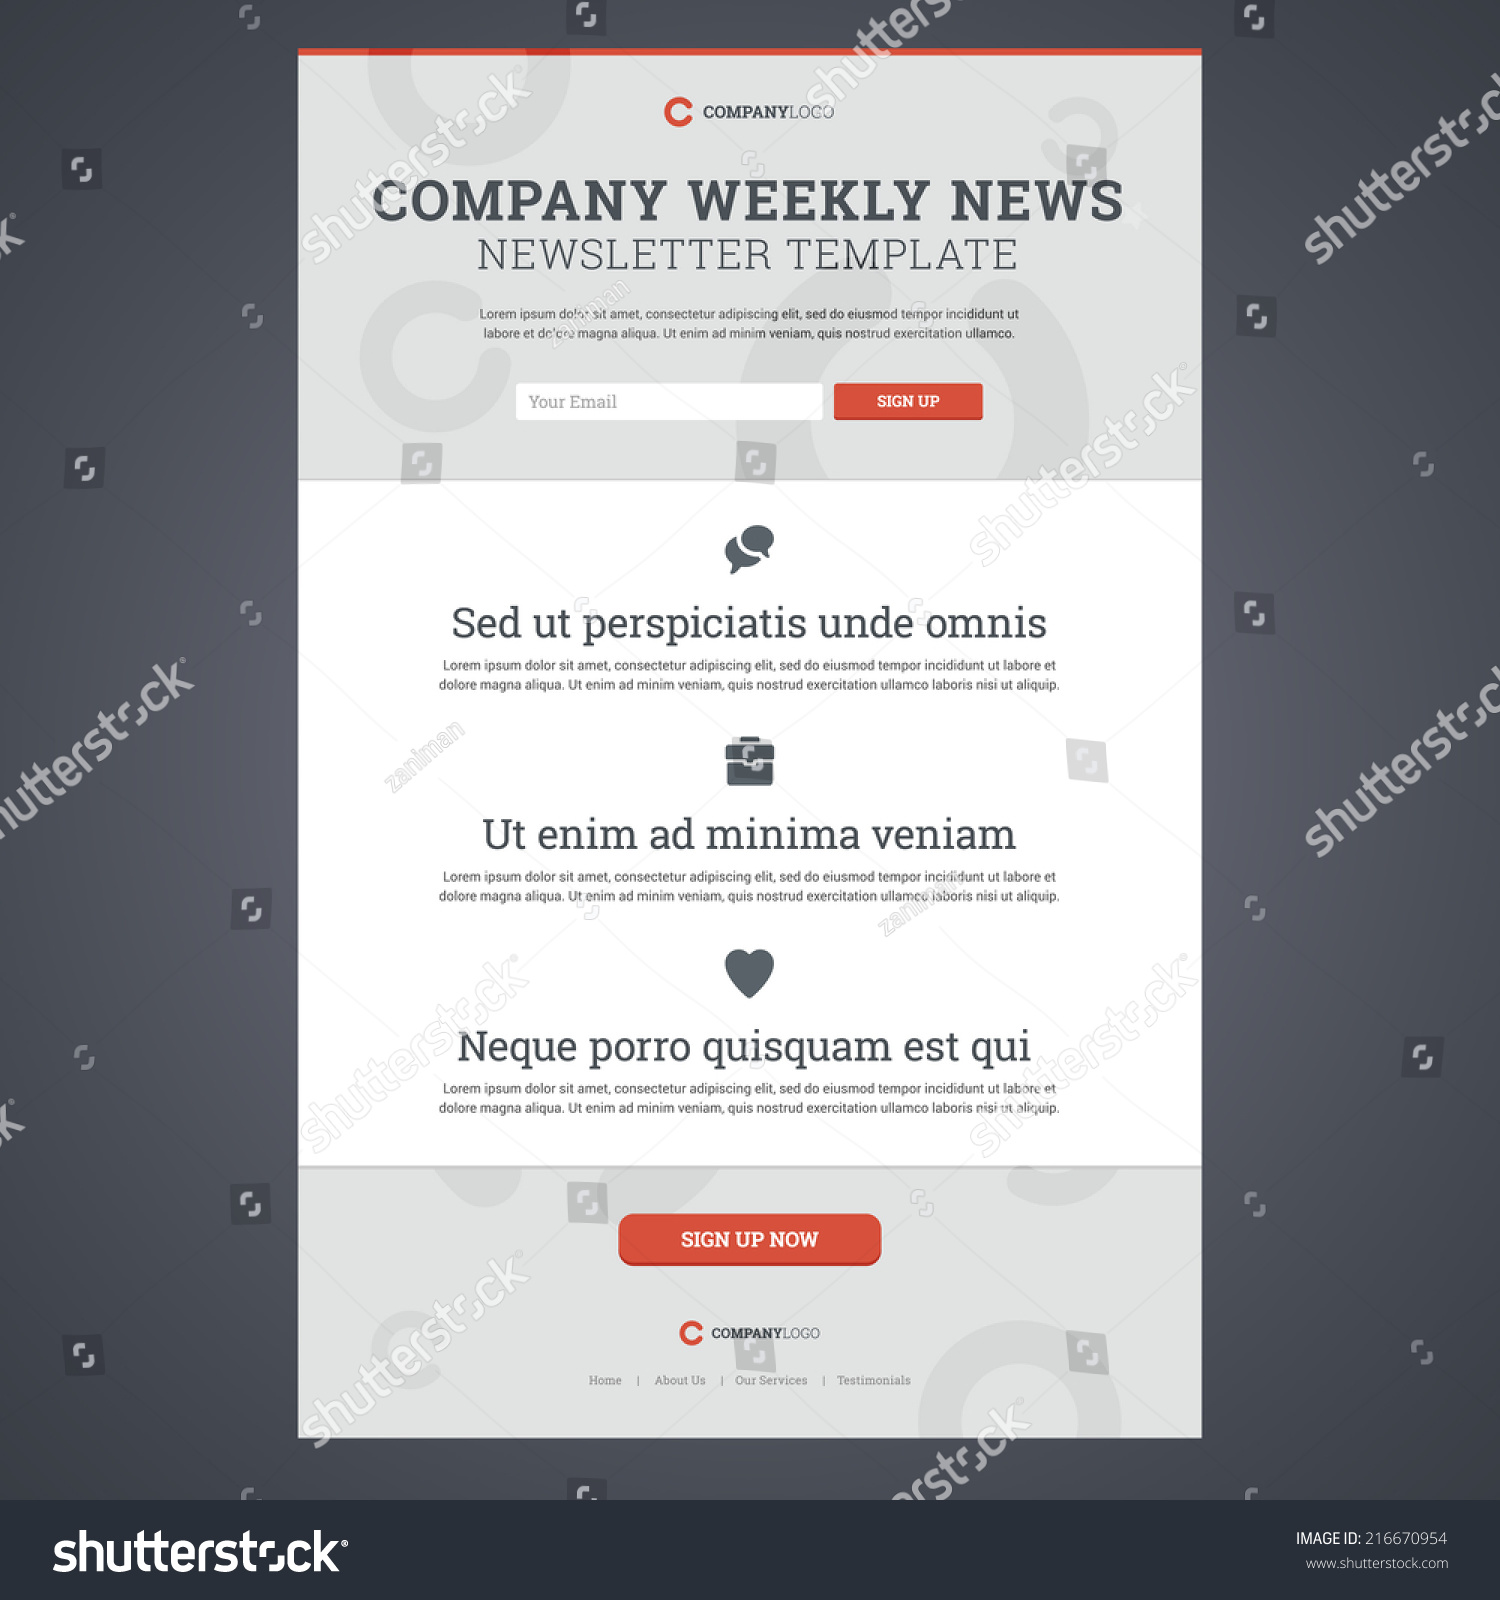 pany News Newsletter Template With Sign Up Form Vector